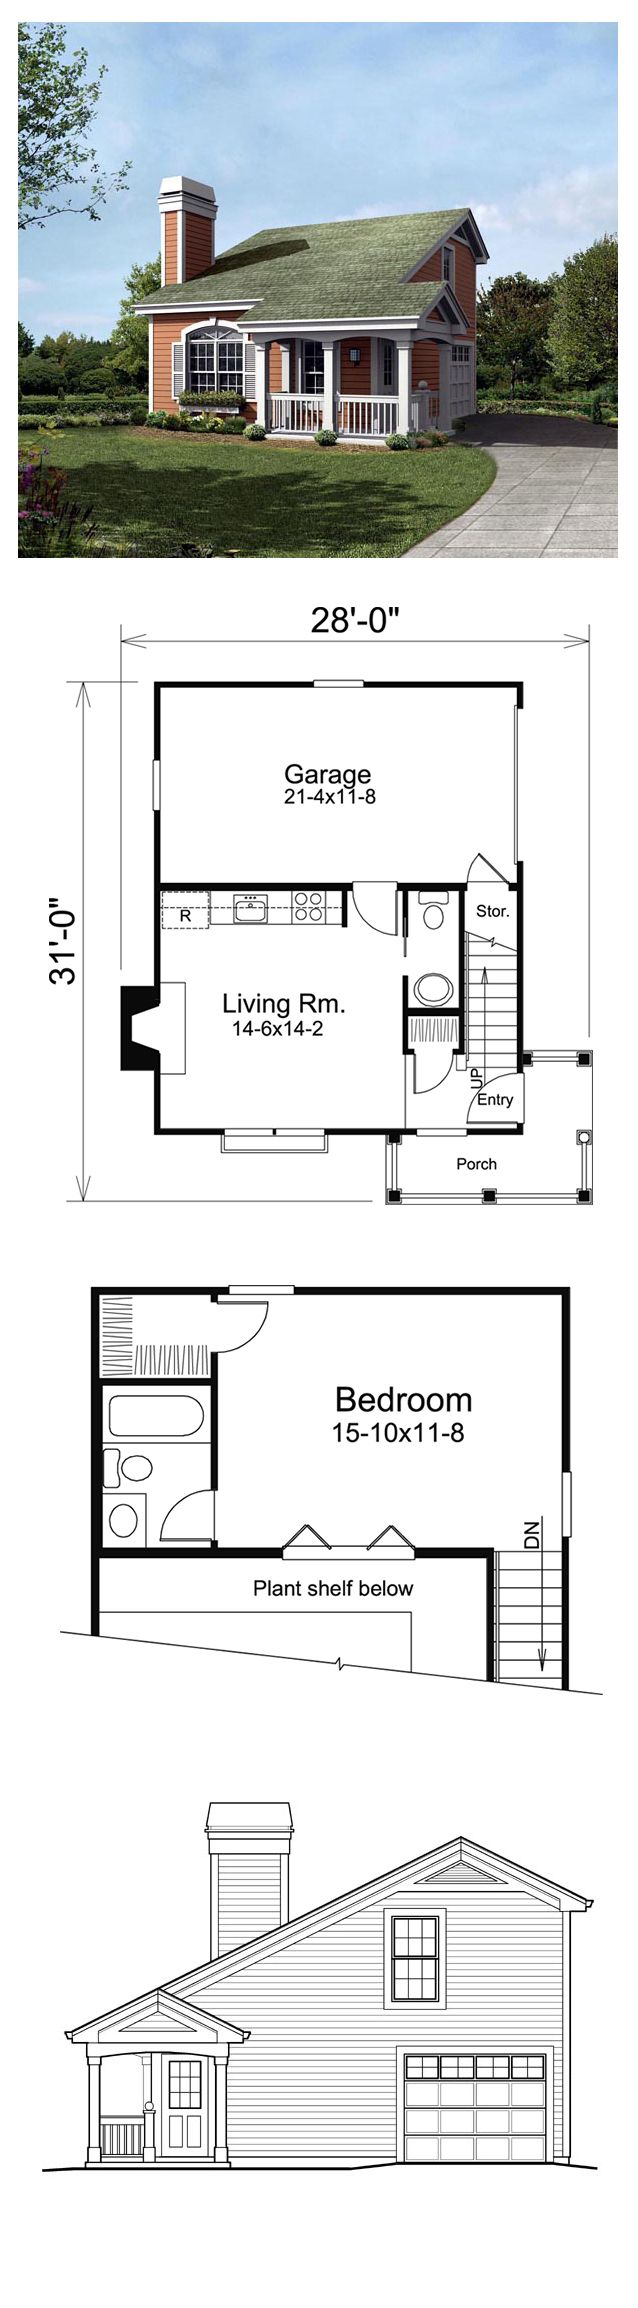 Saltbox Style COOL House Plan ID: chp-51447 | Total Living Area: 641 sq. ft., 1 bedroom & 1.5 bathrooms. #houseplan #saltboxstyle